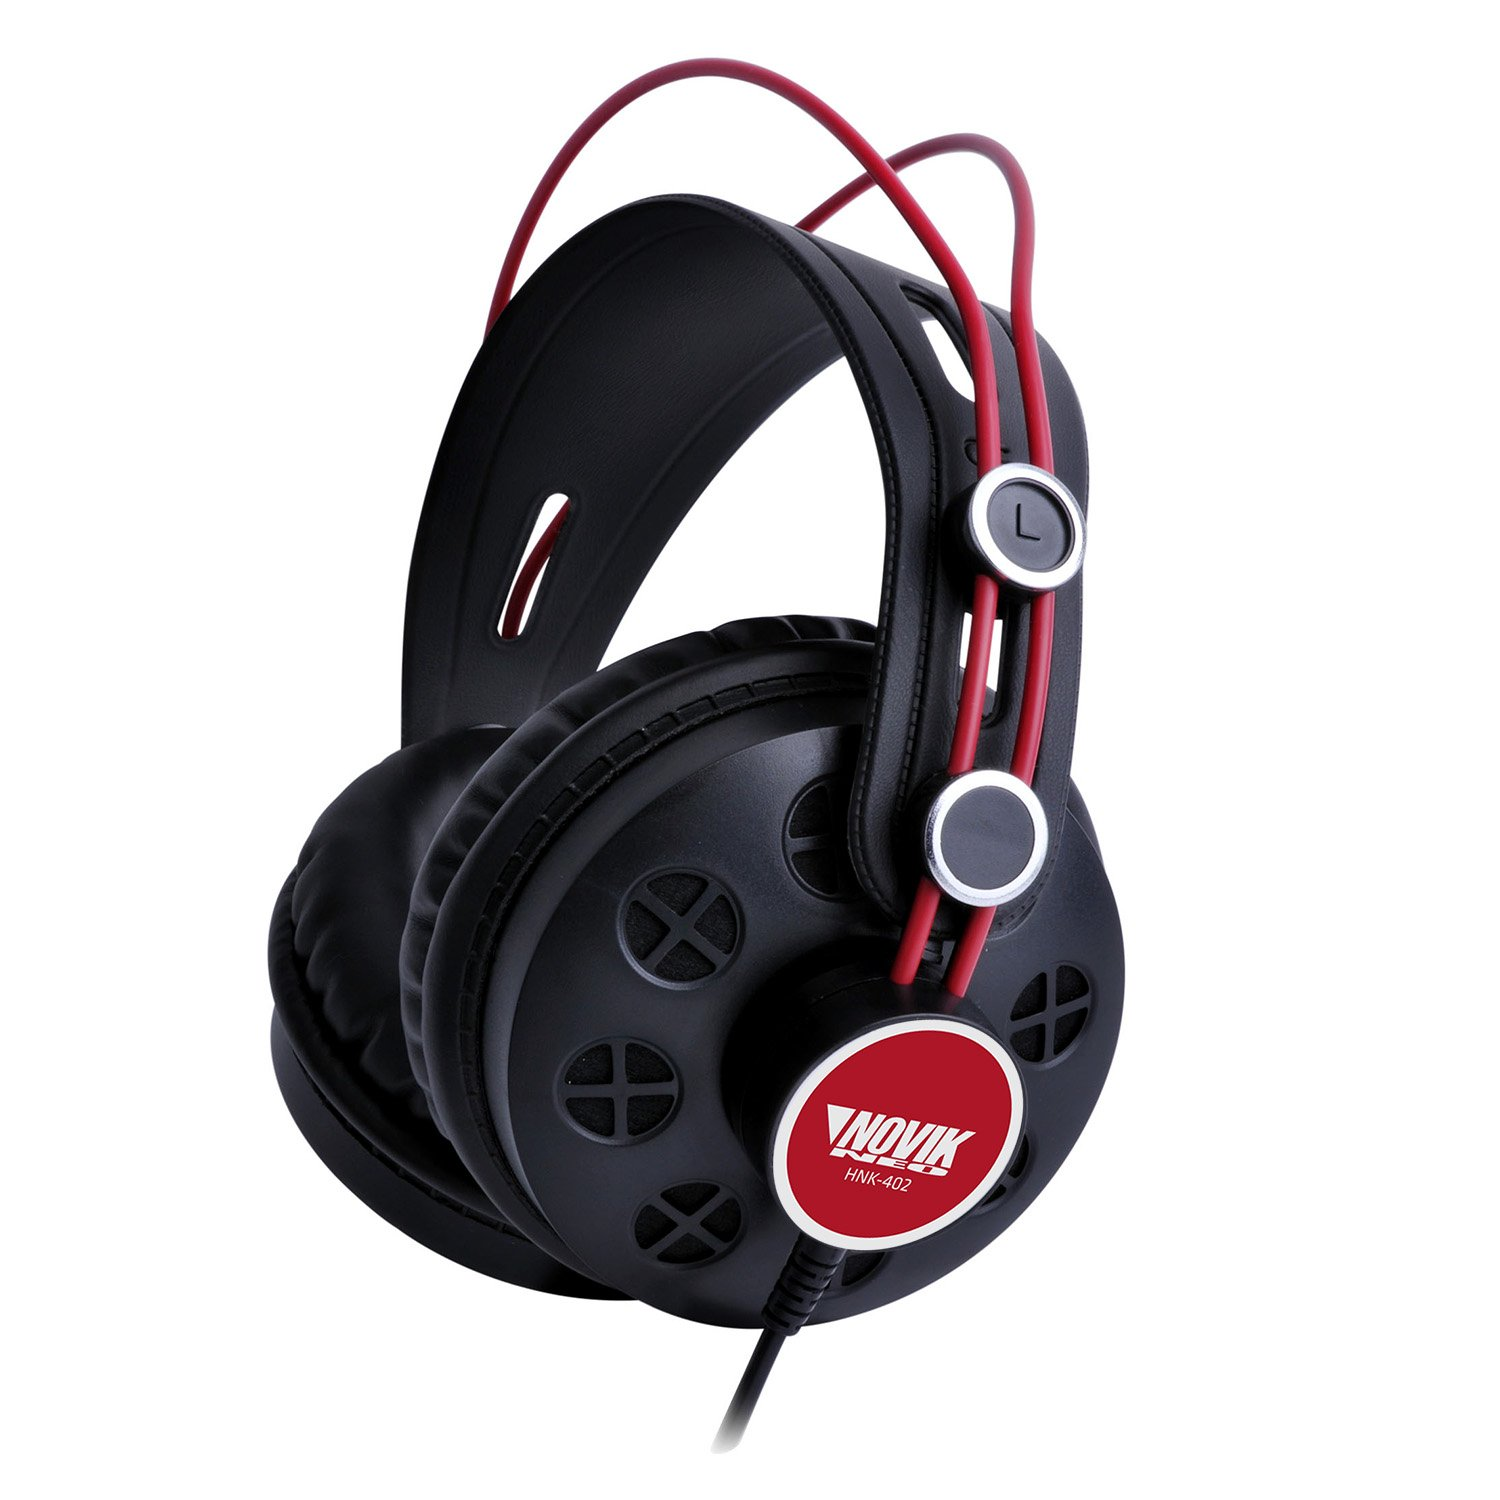 """NOVIK NEO HNK-402 Professional Reference Studio Headphones Max Power: 1200mW 1/4"""" Jack adapter included 1/8"""" Stereo mini-jack connector (3 meters Cable)"""